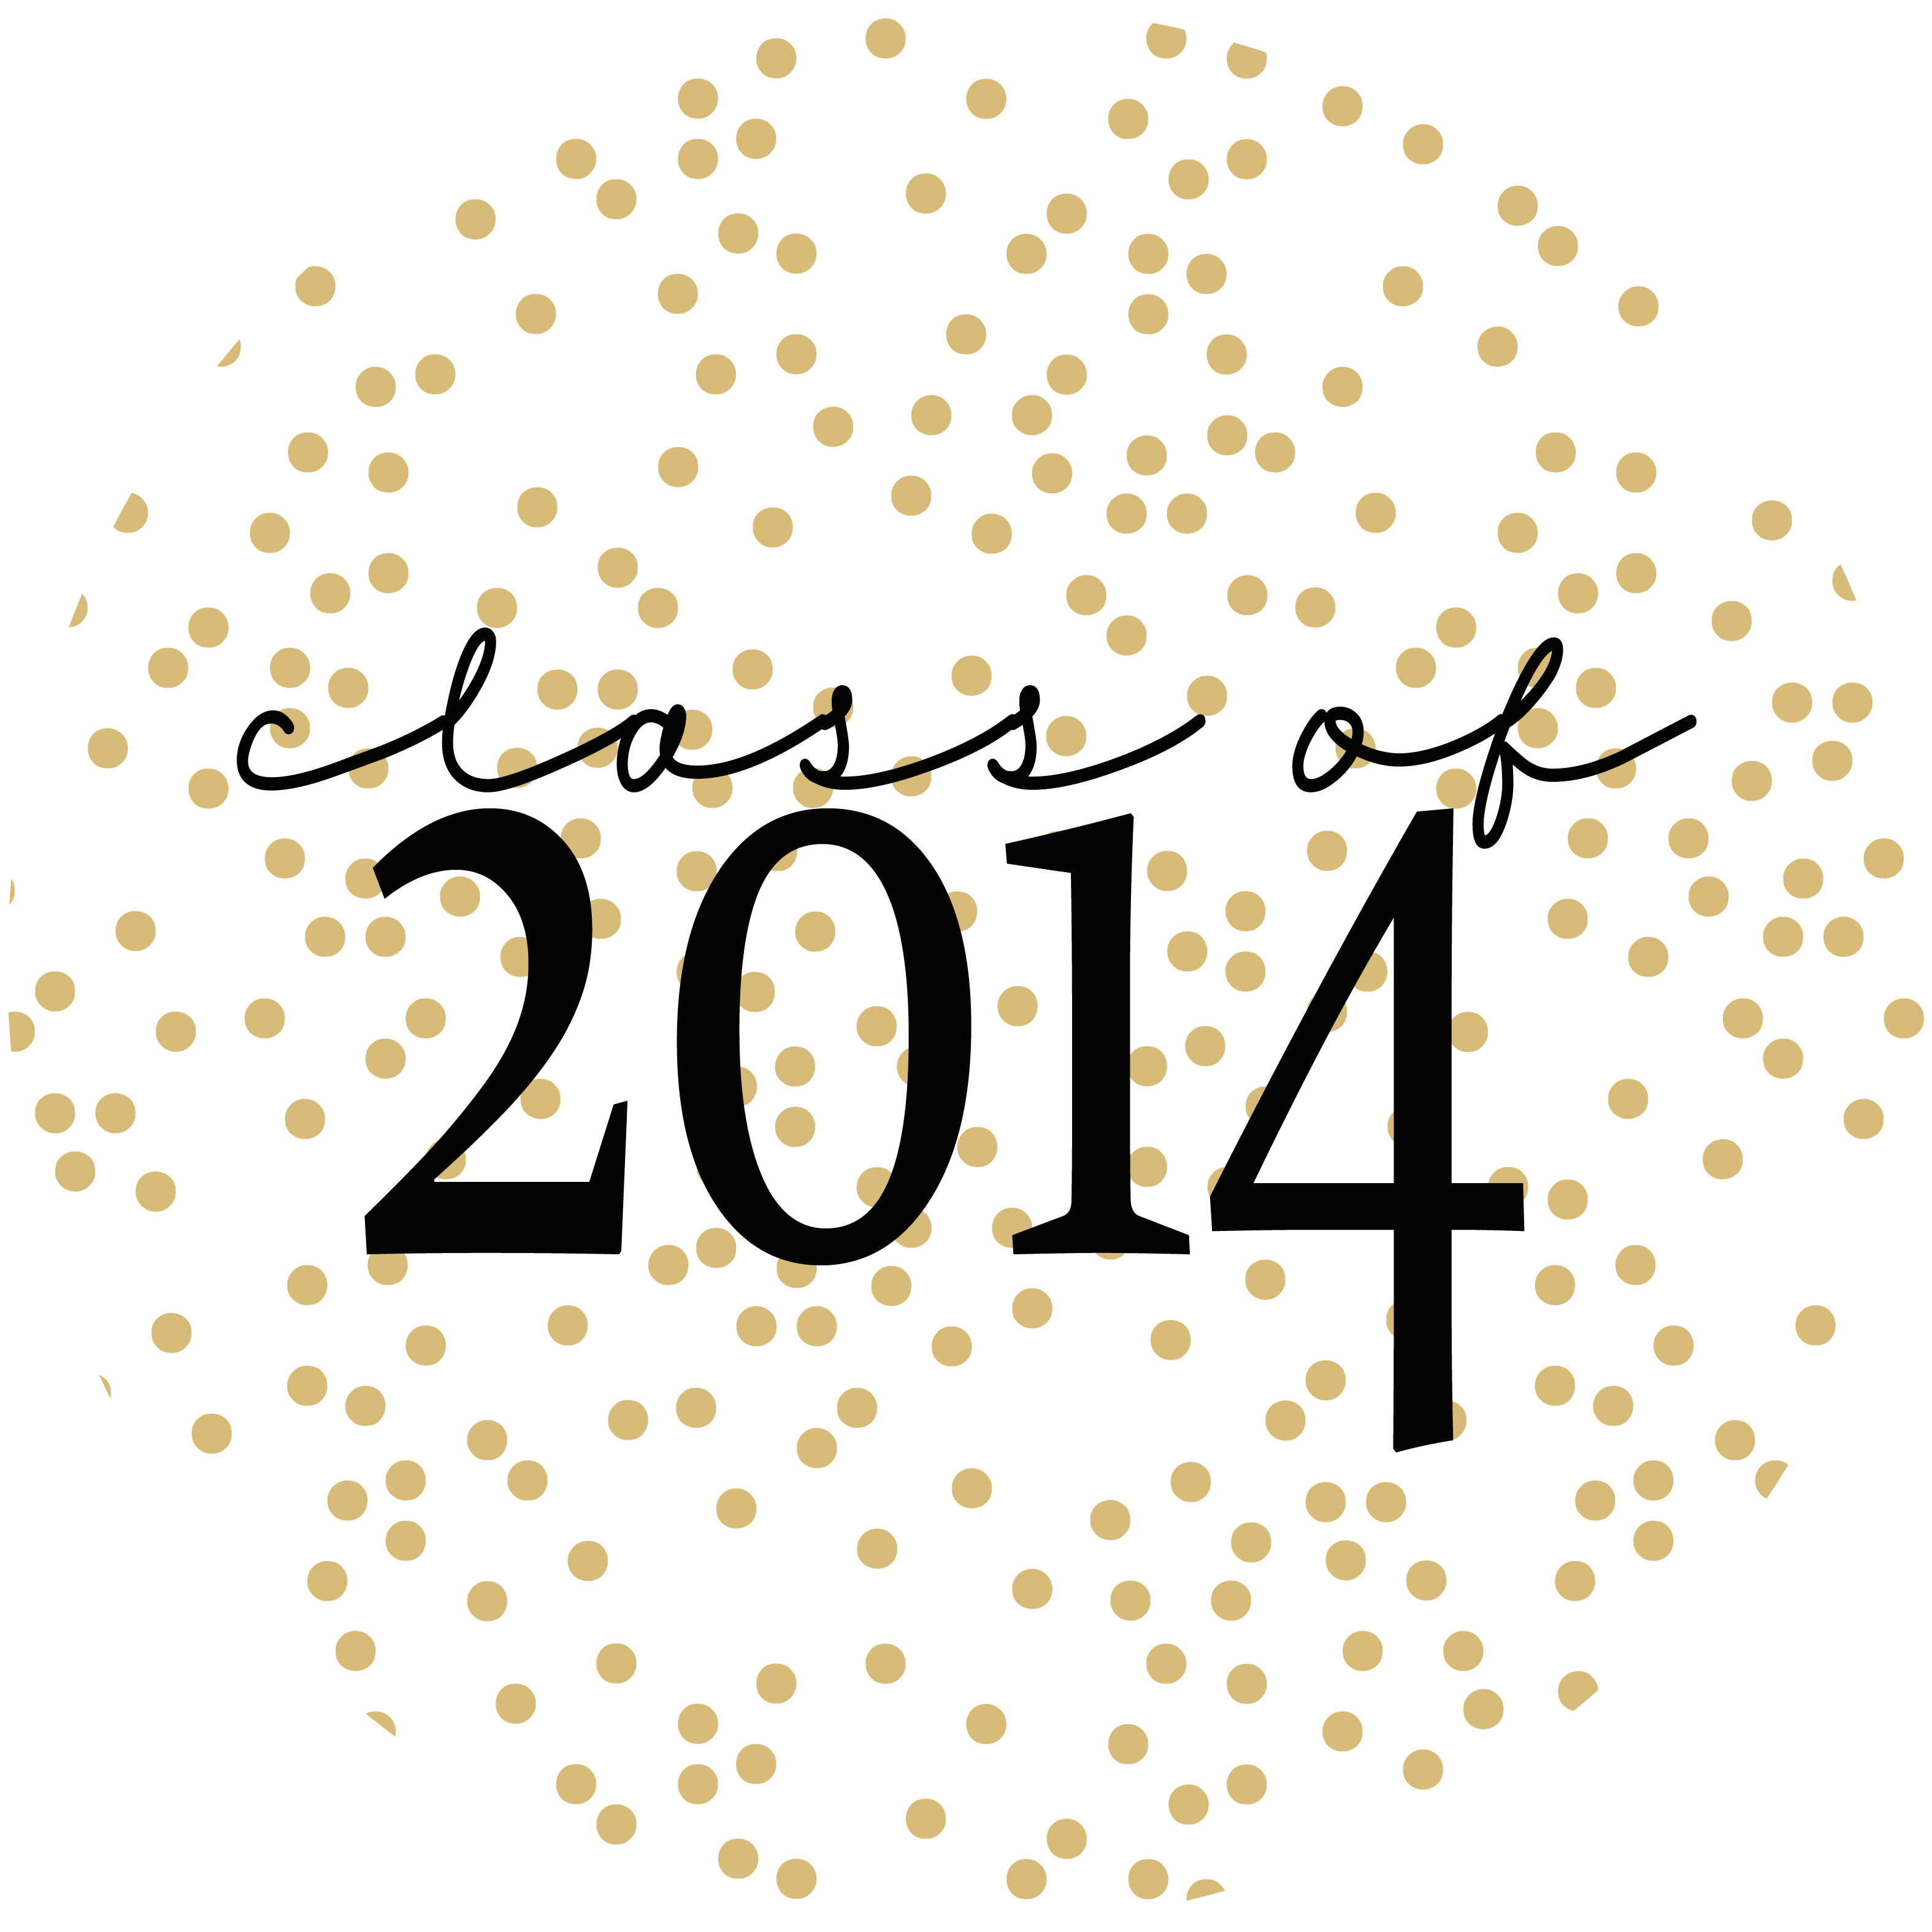 Graduating Class Of 2014 Backgrounds Graduation Wallpaper C...